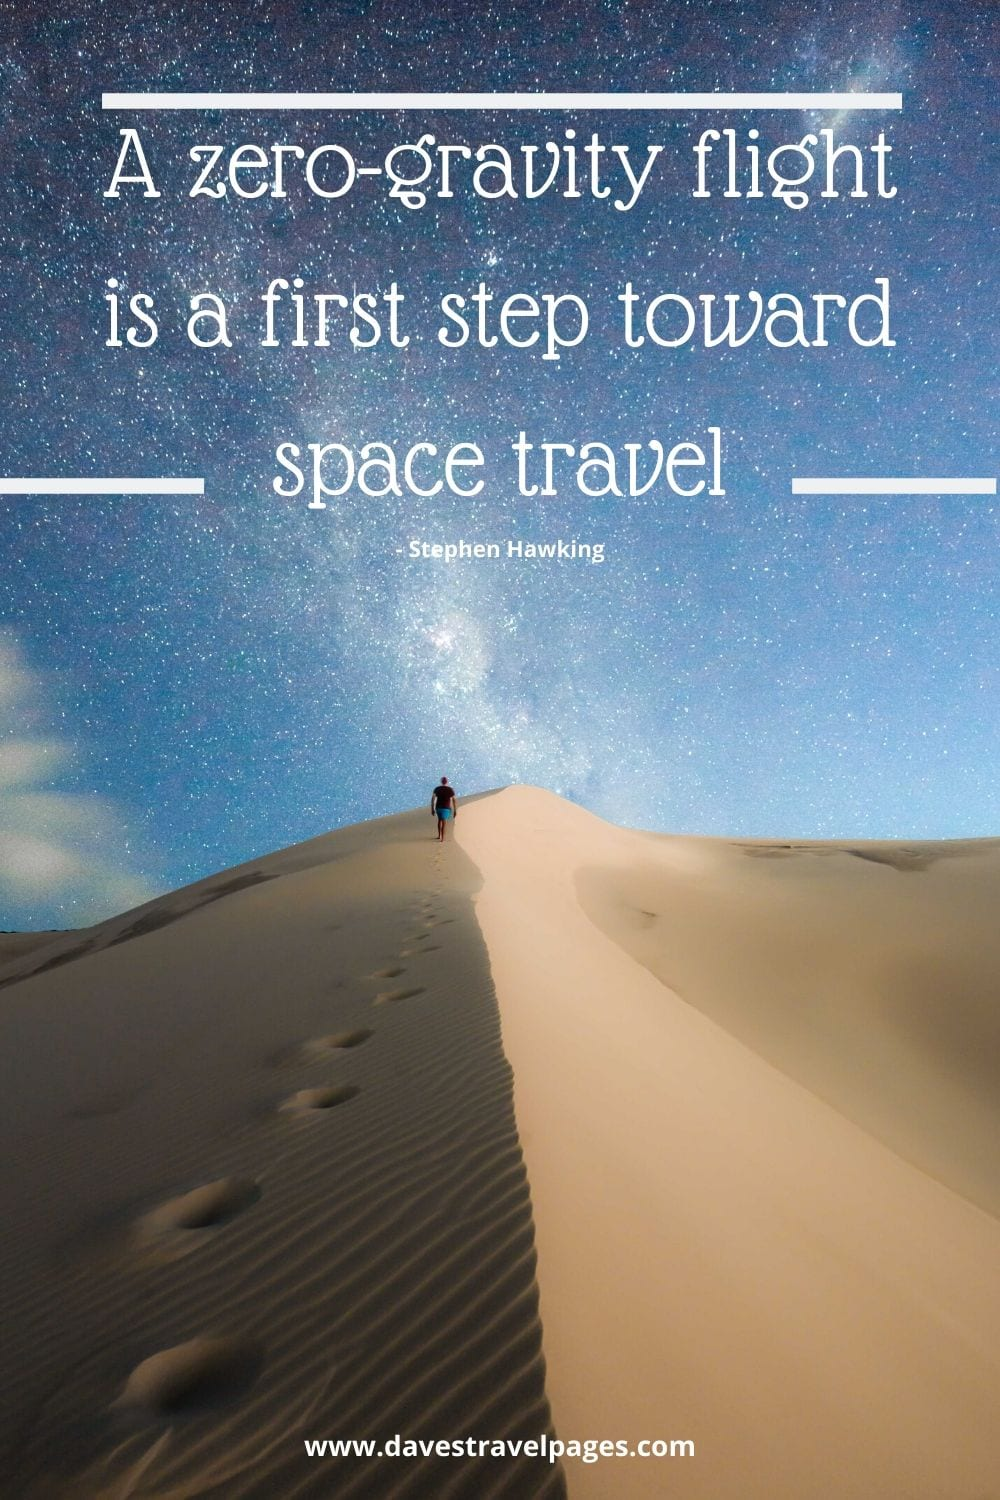 Famous quotes about travelling - A zero-gravity flight is a first step toward space travel. Stephen Hawking